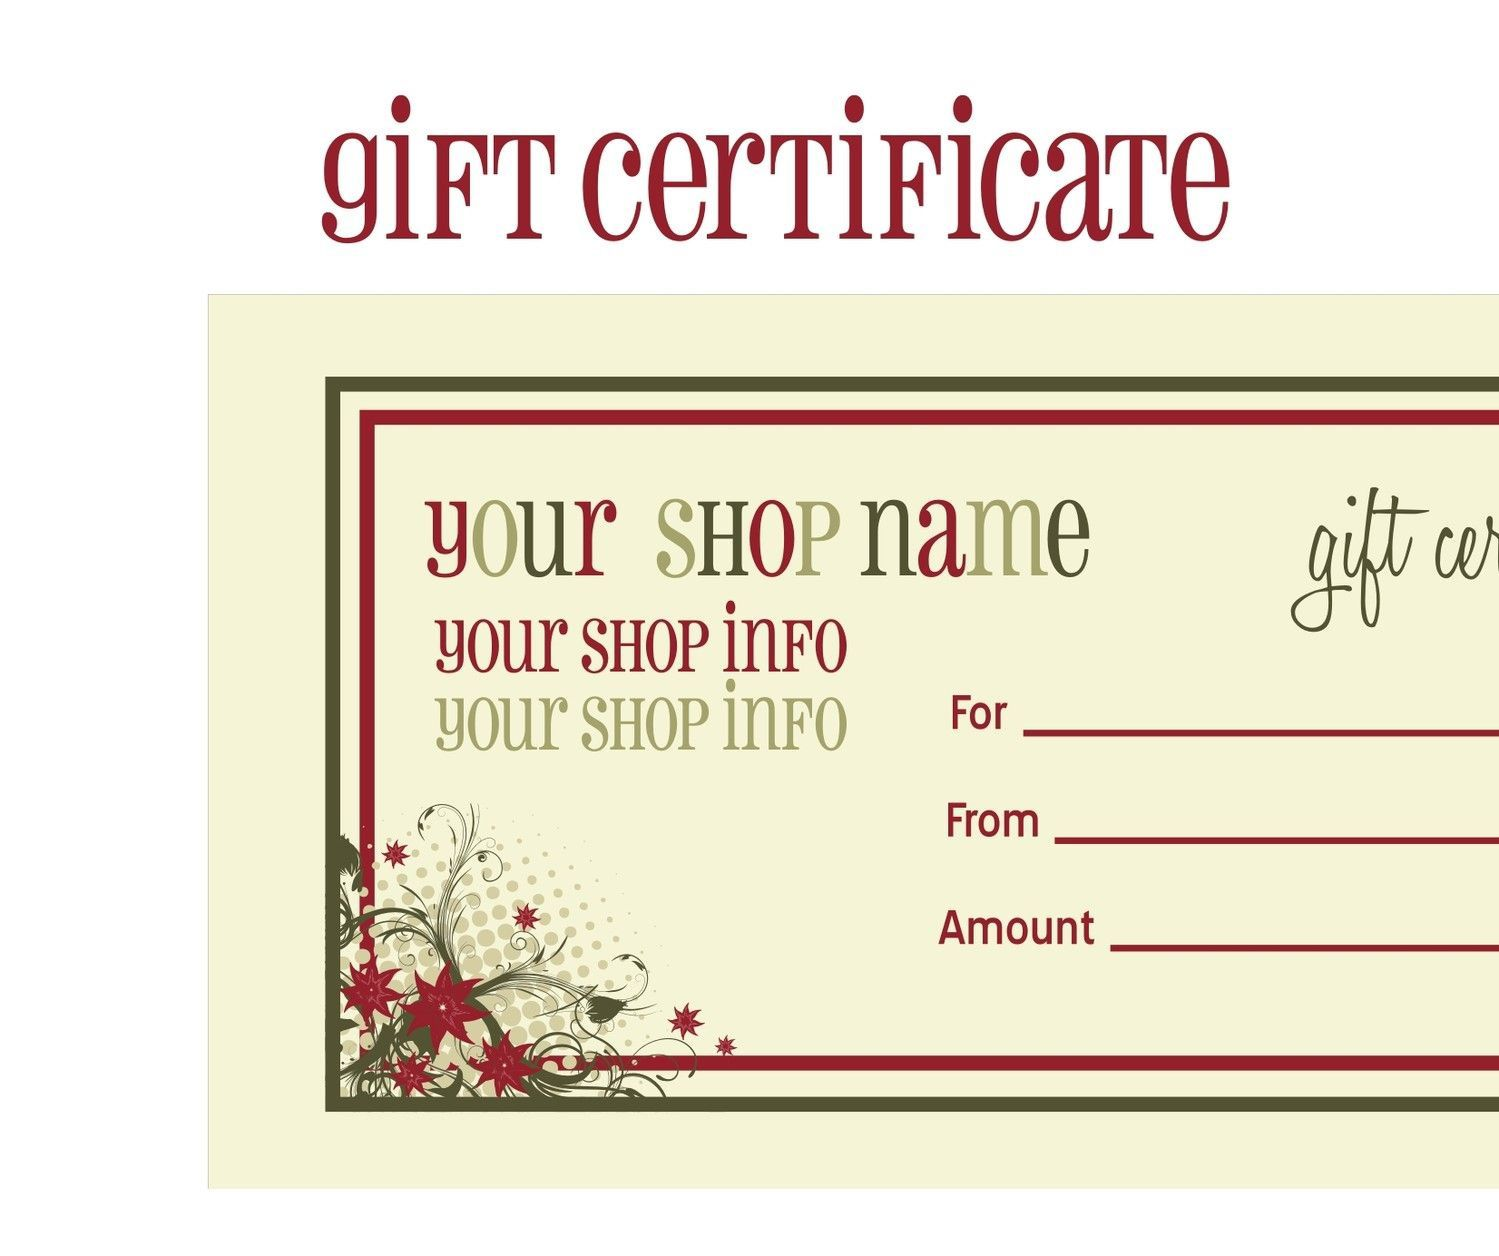 003 Awesome Printable Gift Certificate Template High Definition  Card Free Christma MassageFull